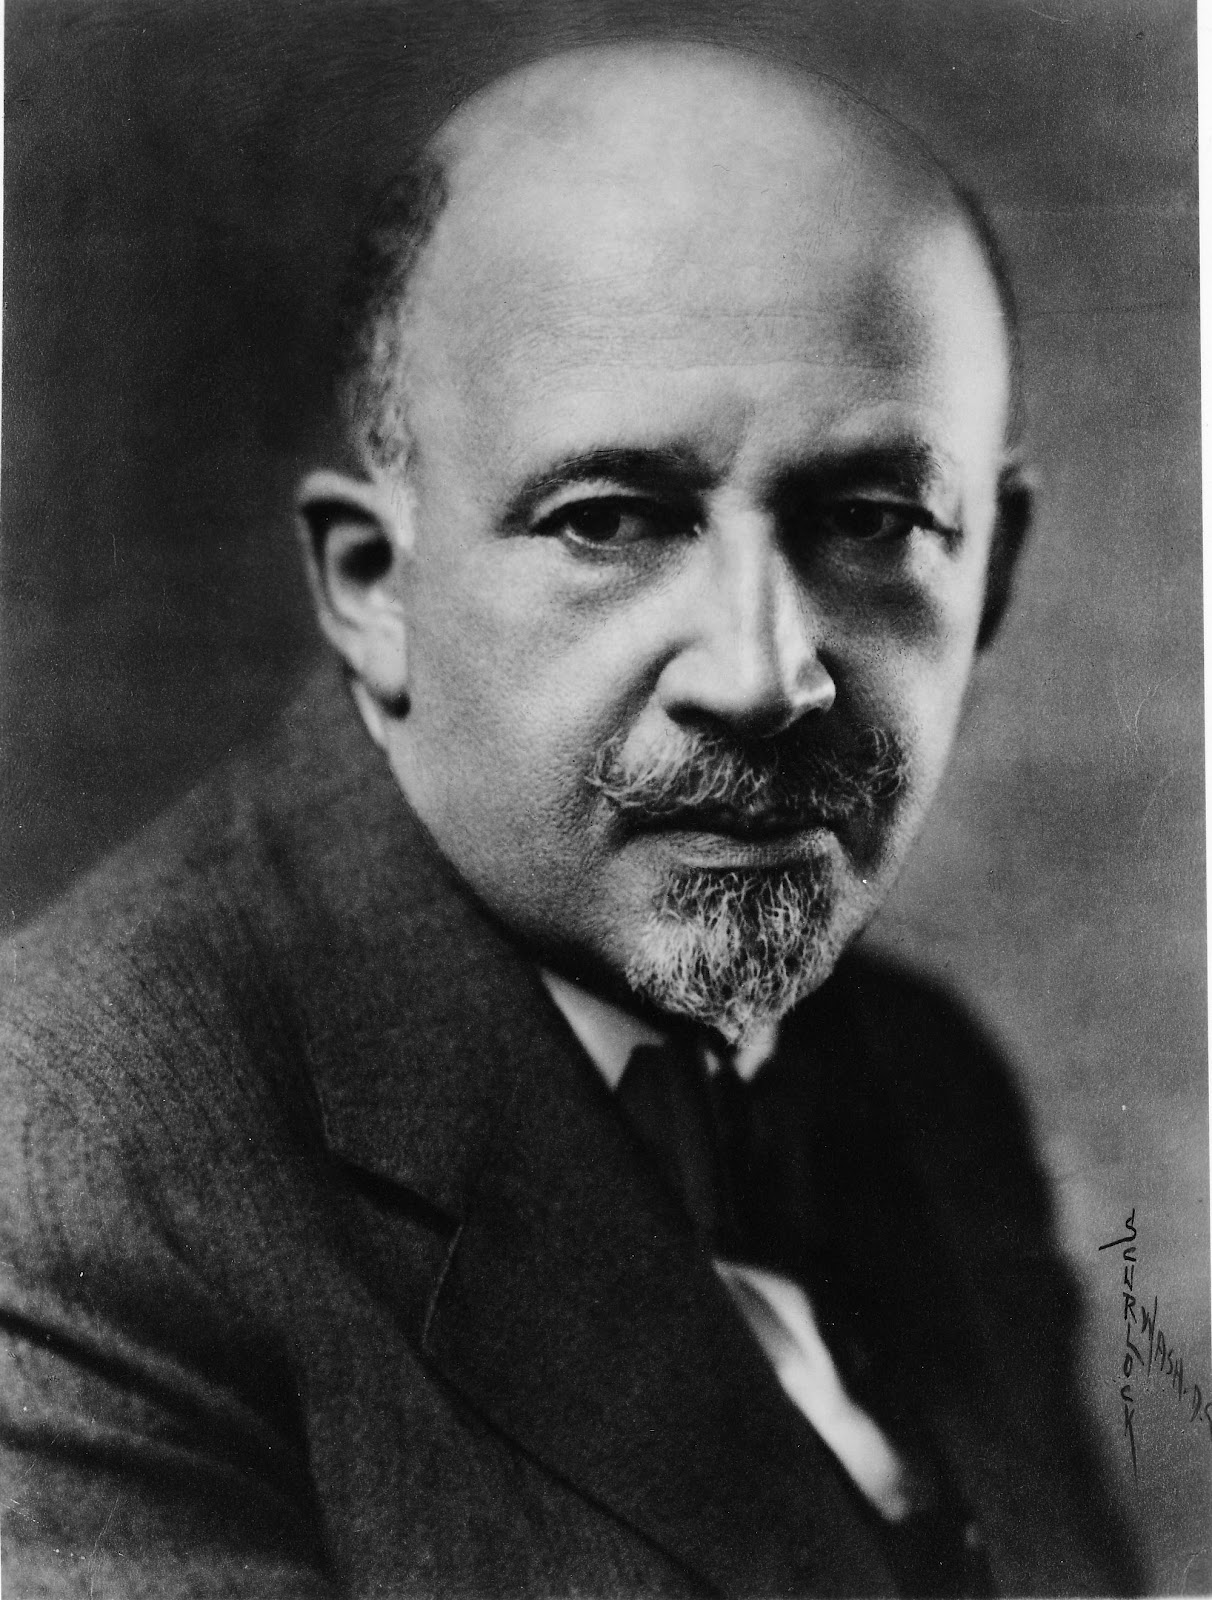 w e b dubois marcus garvey booker The marcus garvey and universal negro  protest leader frederick  douglass and the pre-eminent accommodationist booker t  other leaders,  such as a philip randolph in the messenger and web du bois in.